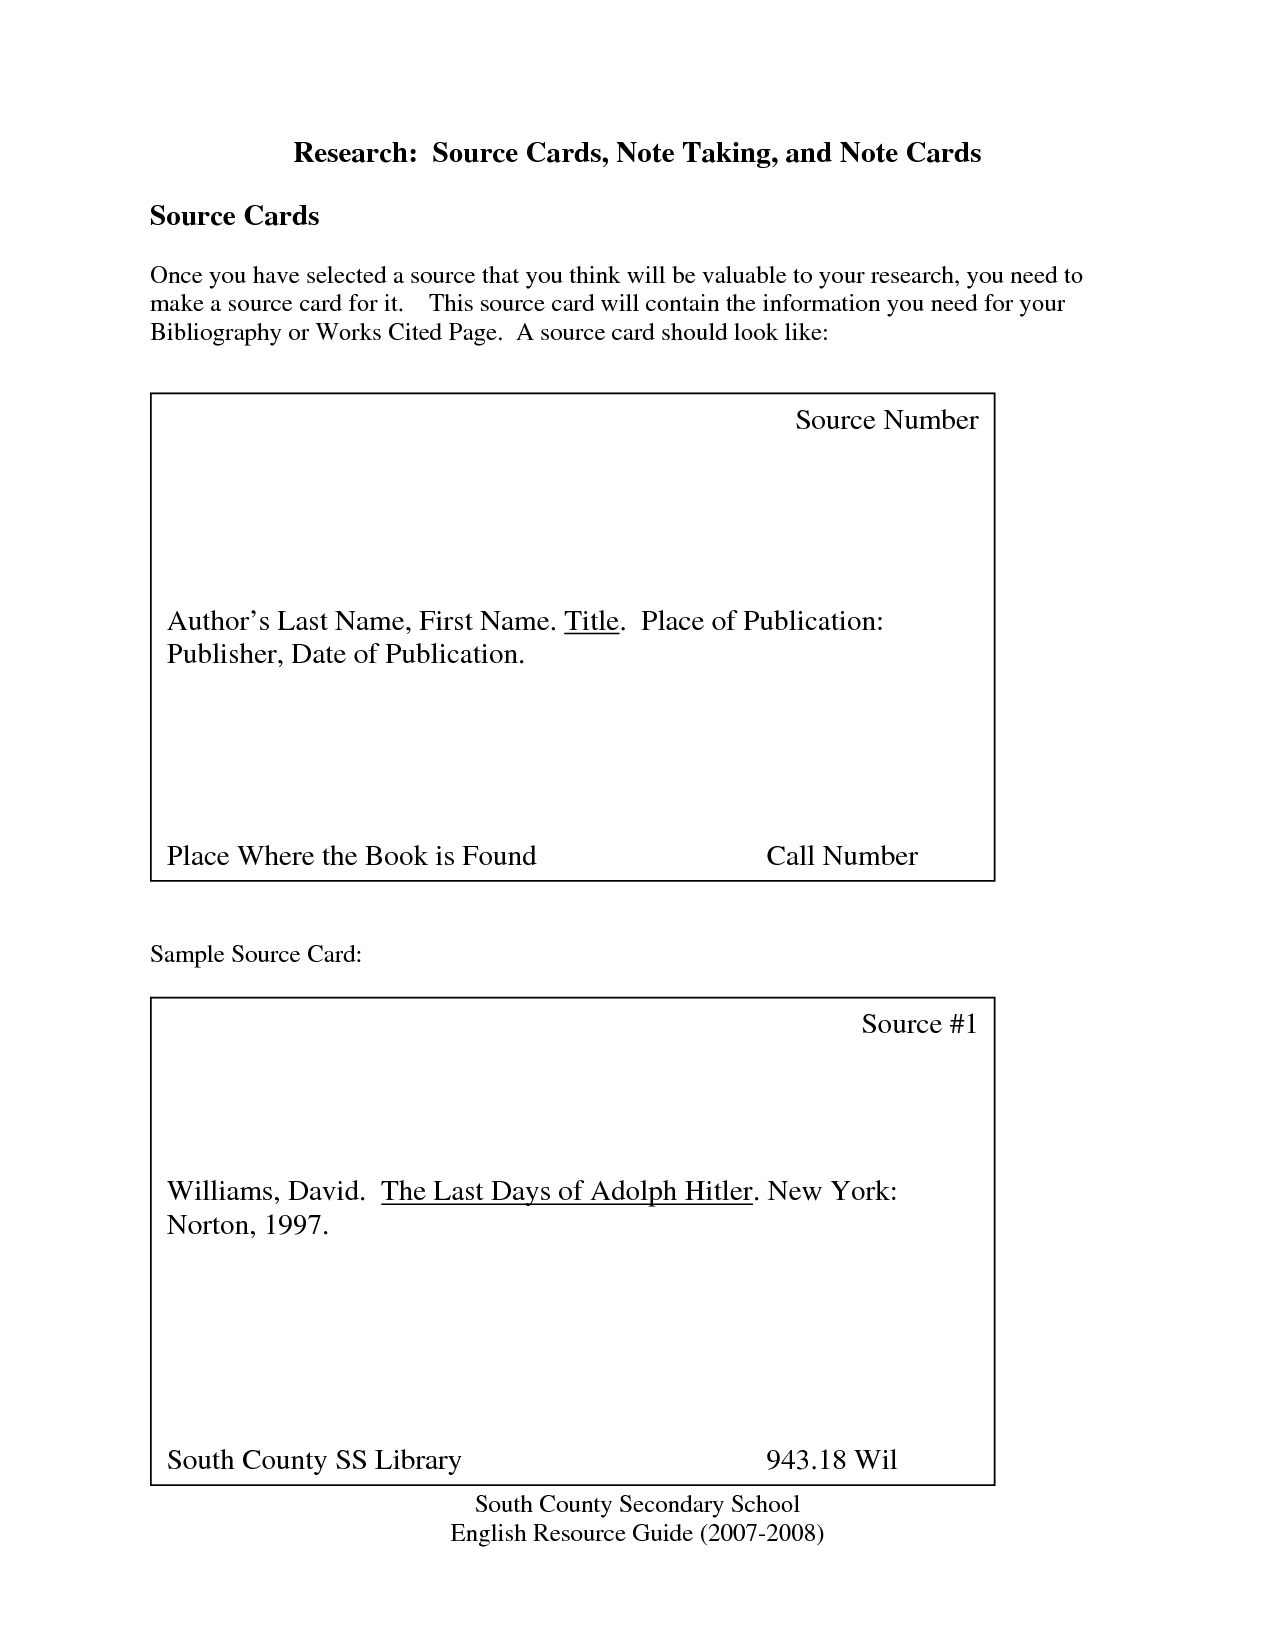 003 Note Cards Template For Research Paper Card Templates 442160 Astounding Example Of Notecards Full